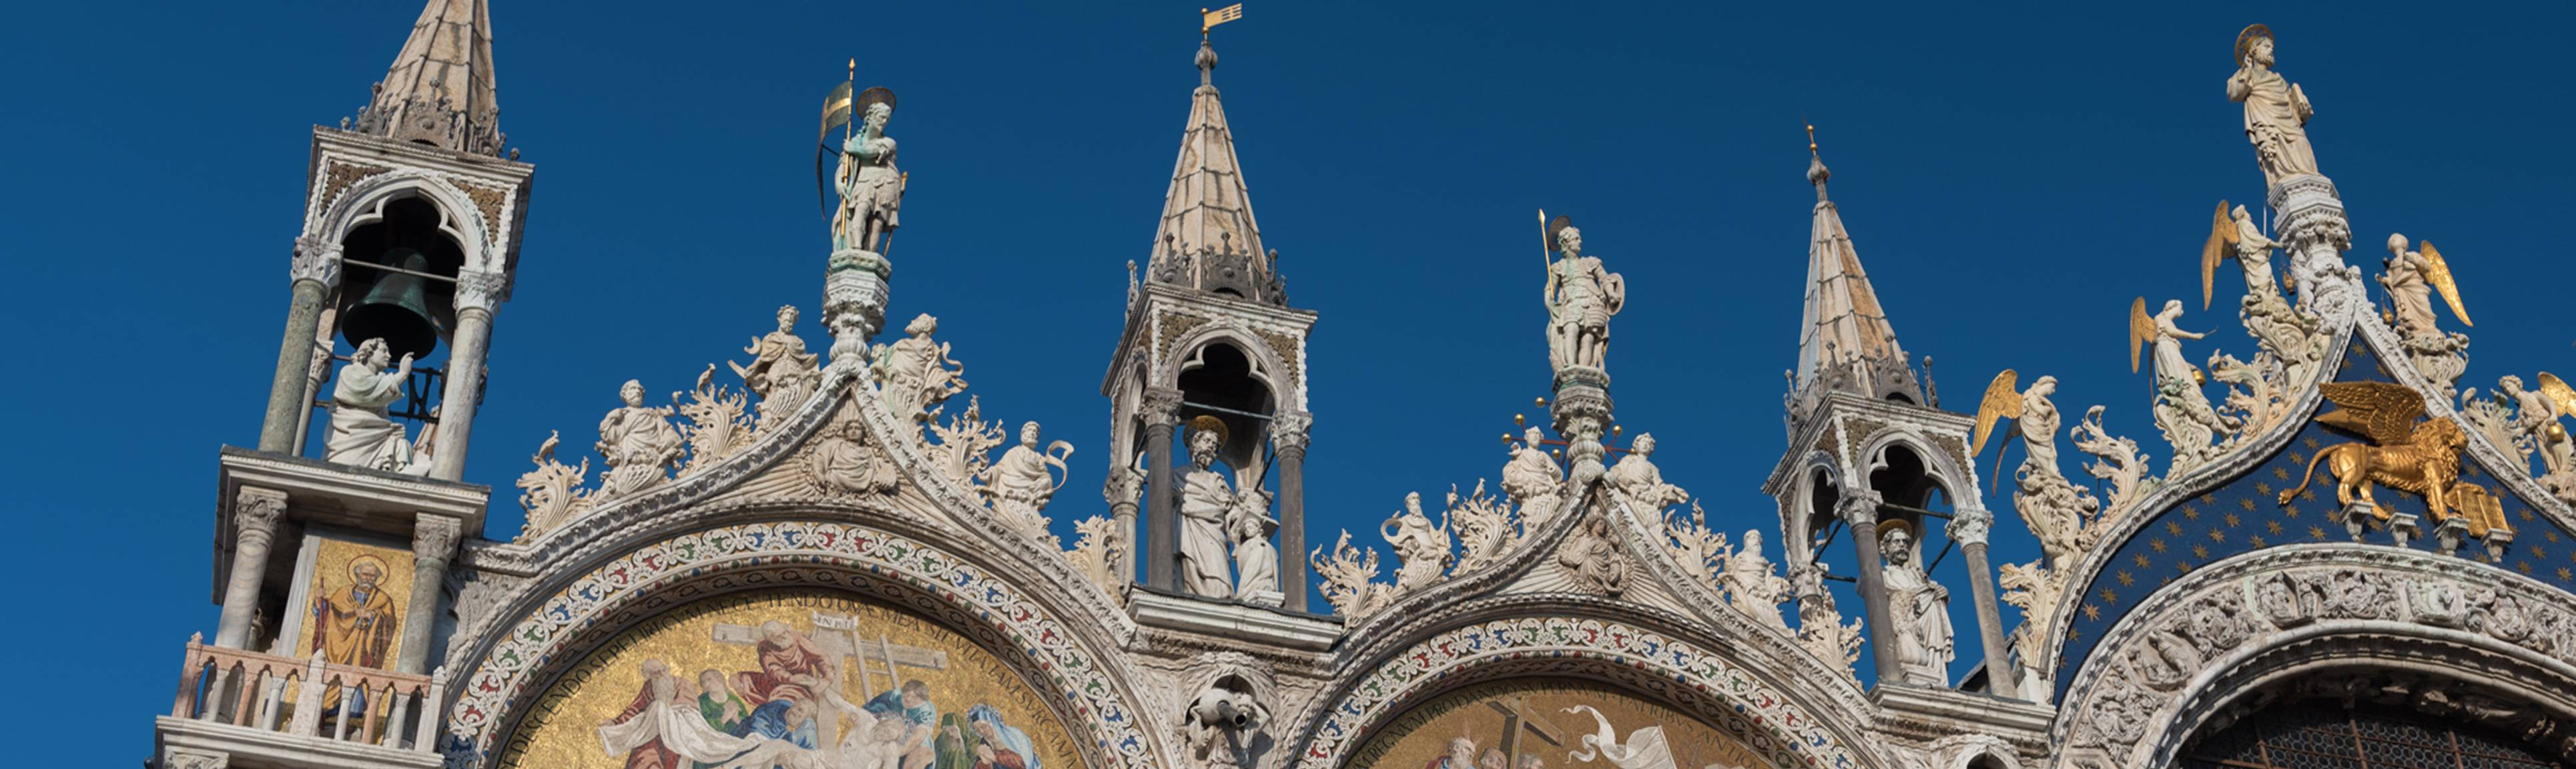 Fascia of St. Mark's Basilica adorned with statues & spires in Venice